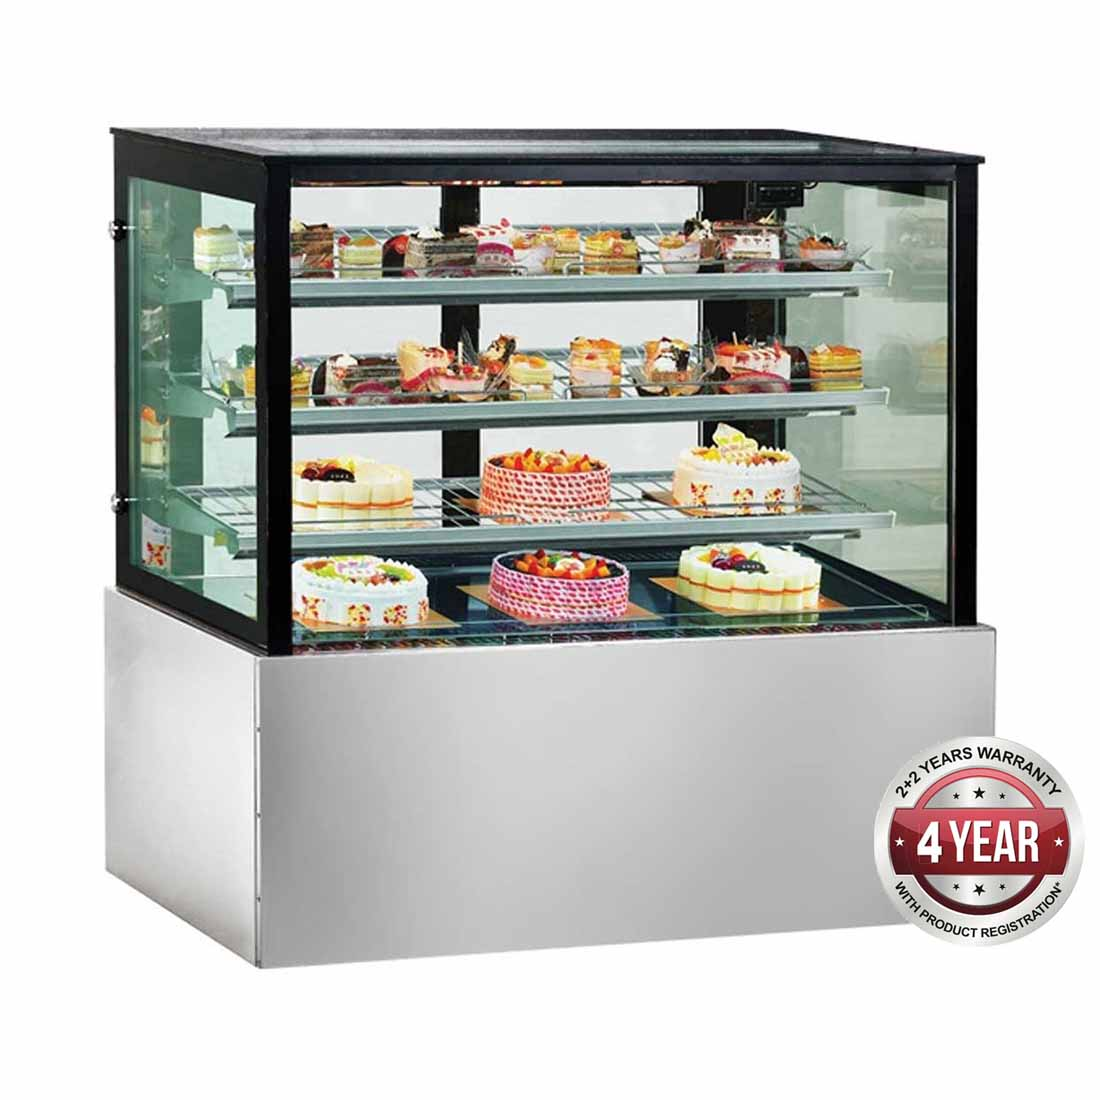 SL860V Bonvue Chilled Food Display